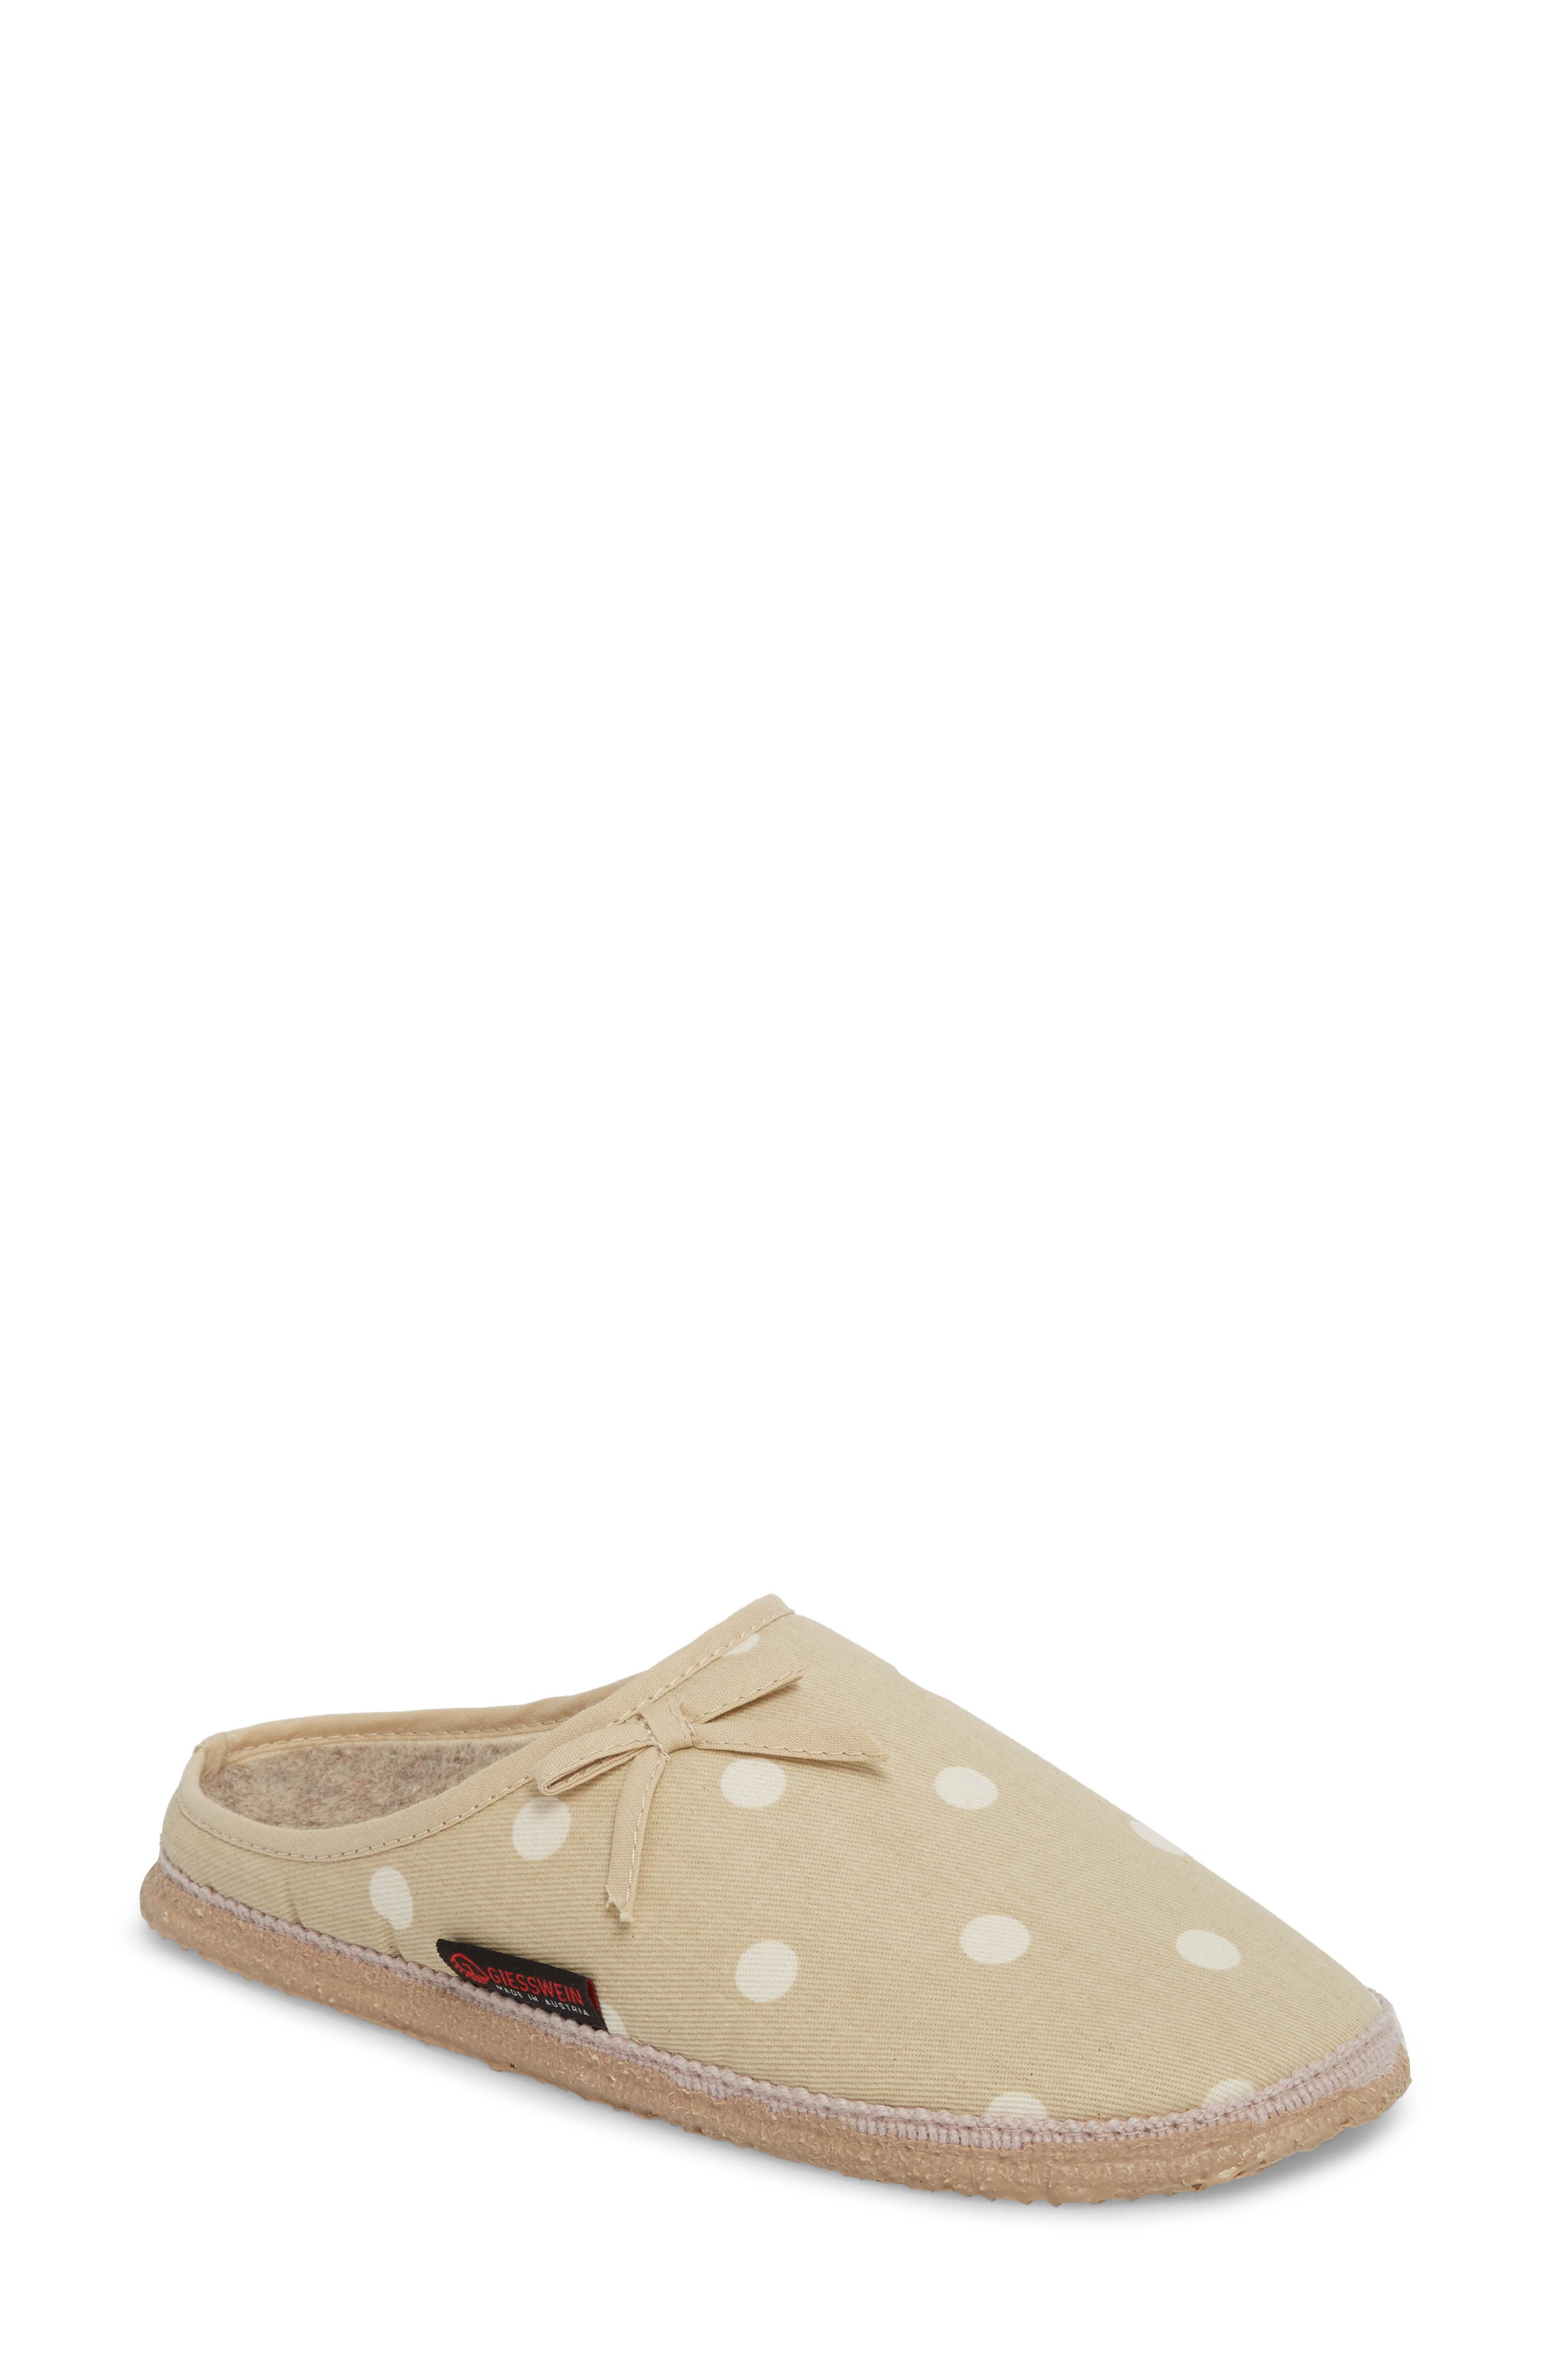 Meadow Slipper,                         Main,                         color, Natural Fabric